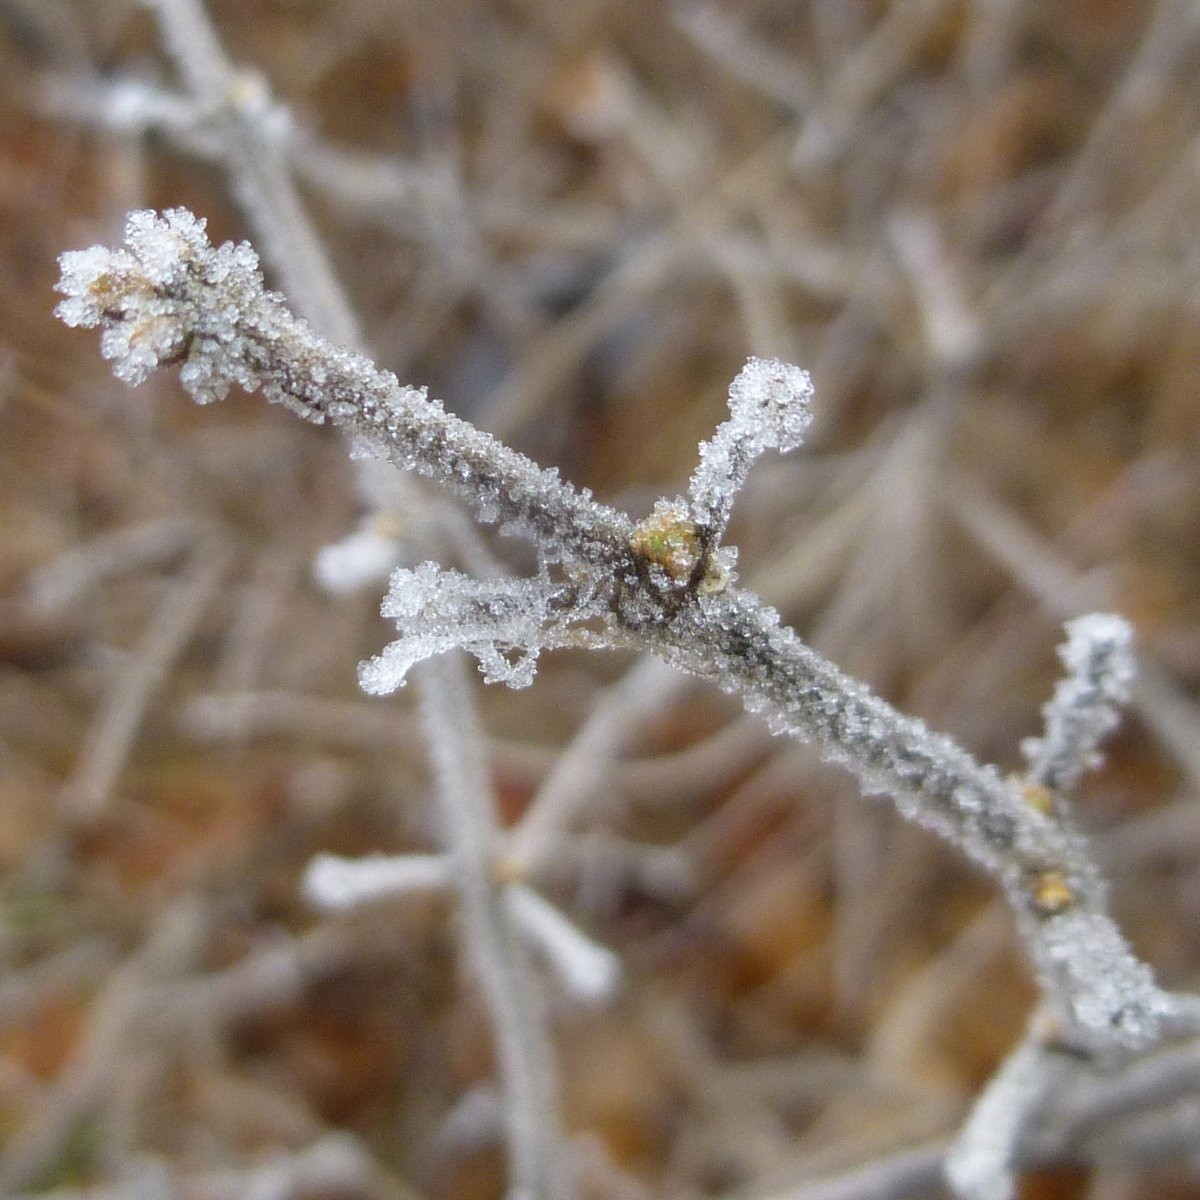 3. Frosted Twigs